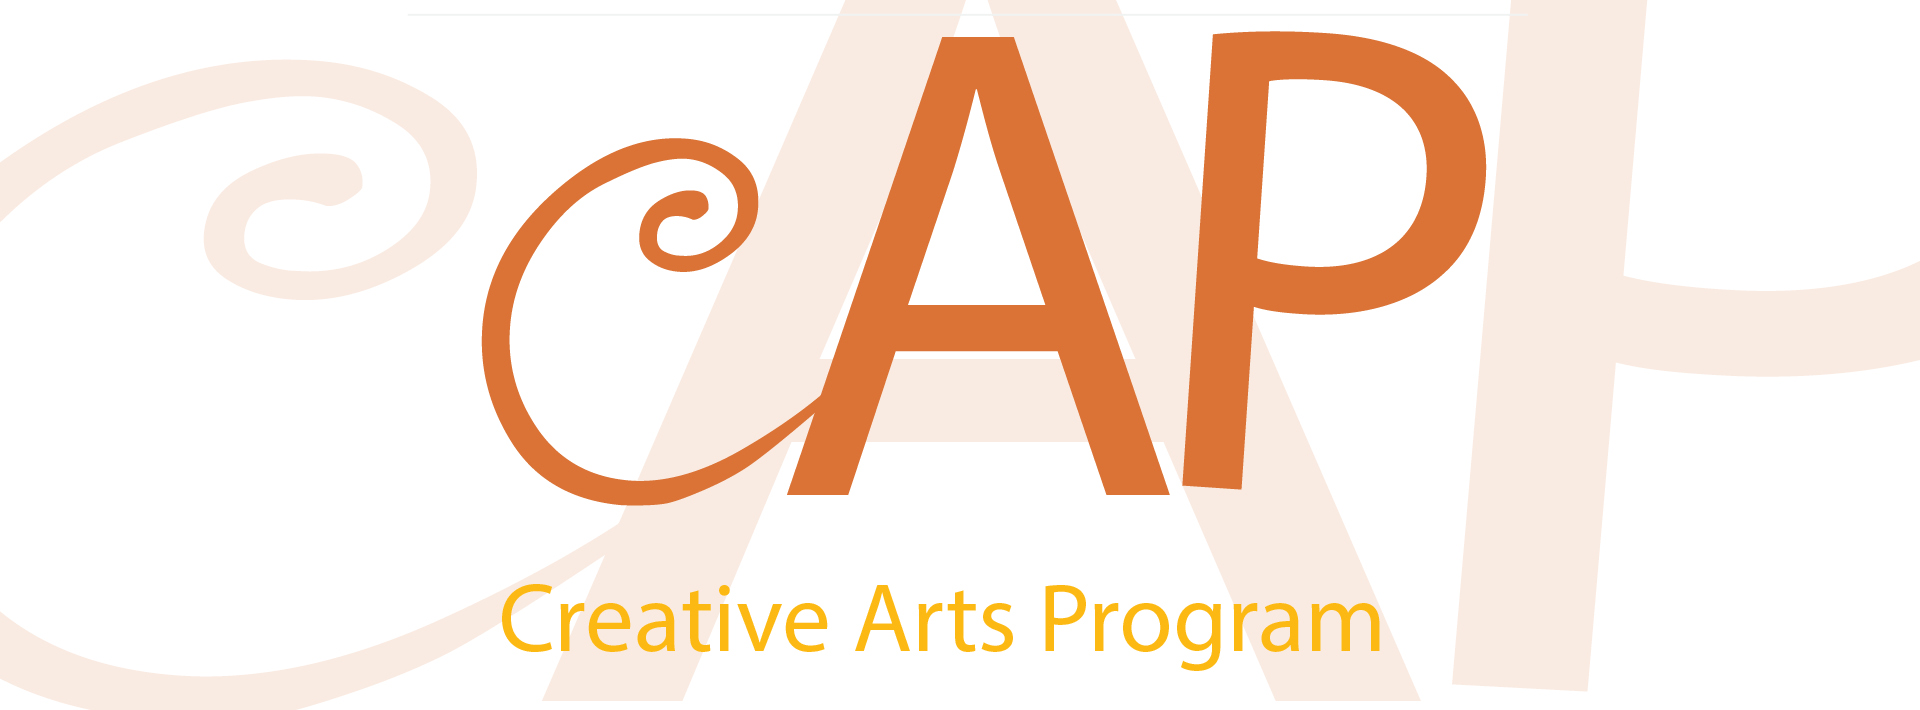 Creative Arts Program